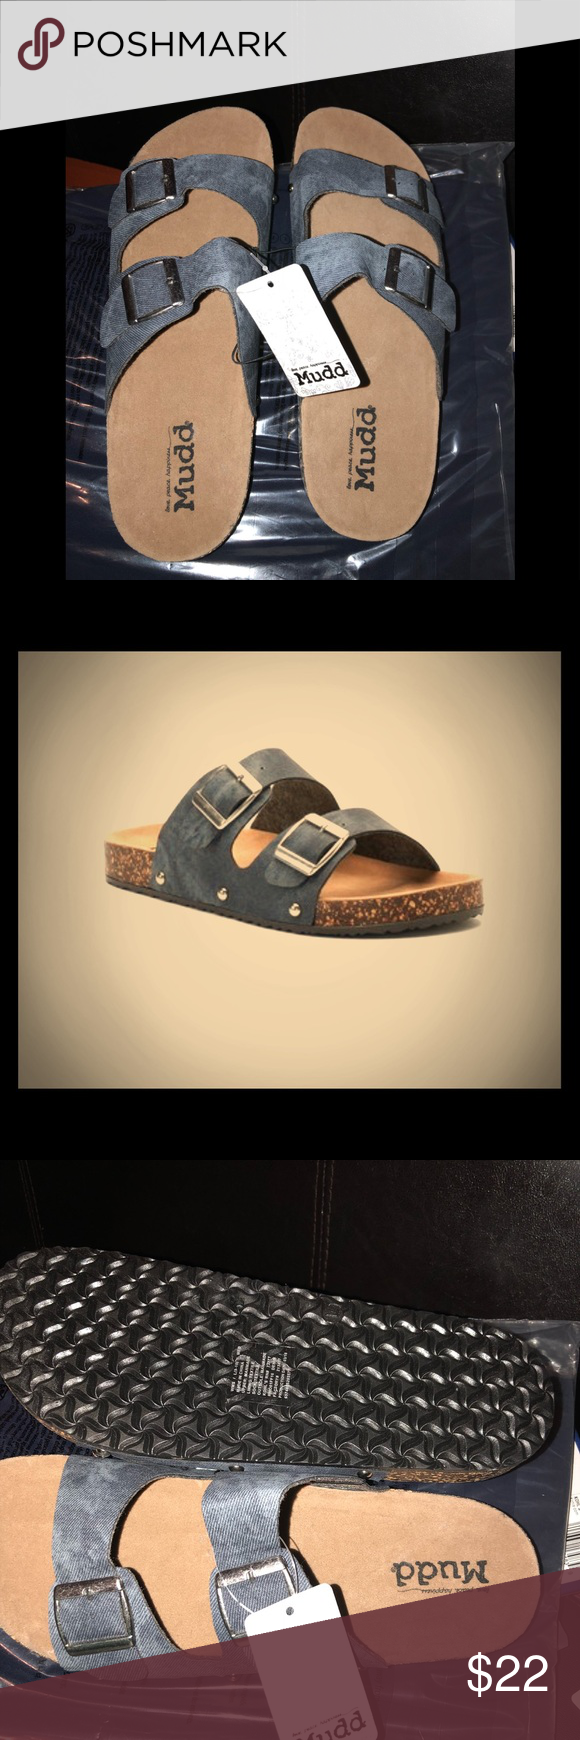 0ca9248741e4 Mudd® Women s Denim Double Buckle Sandals SHOE DETAILS Open toe Slip on  Adjustable buckles 1-in. heel Molded footbed Wipe clean Imported Mudd Shoes  Slippers